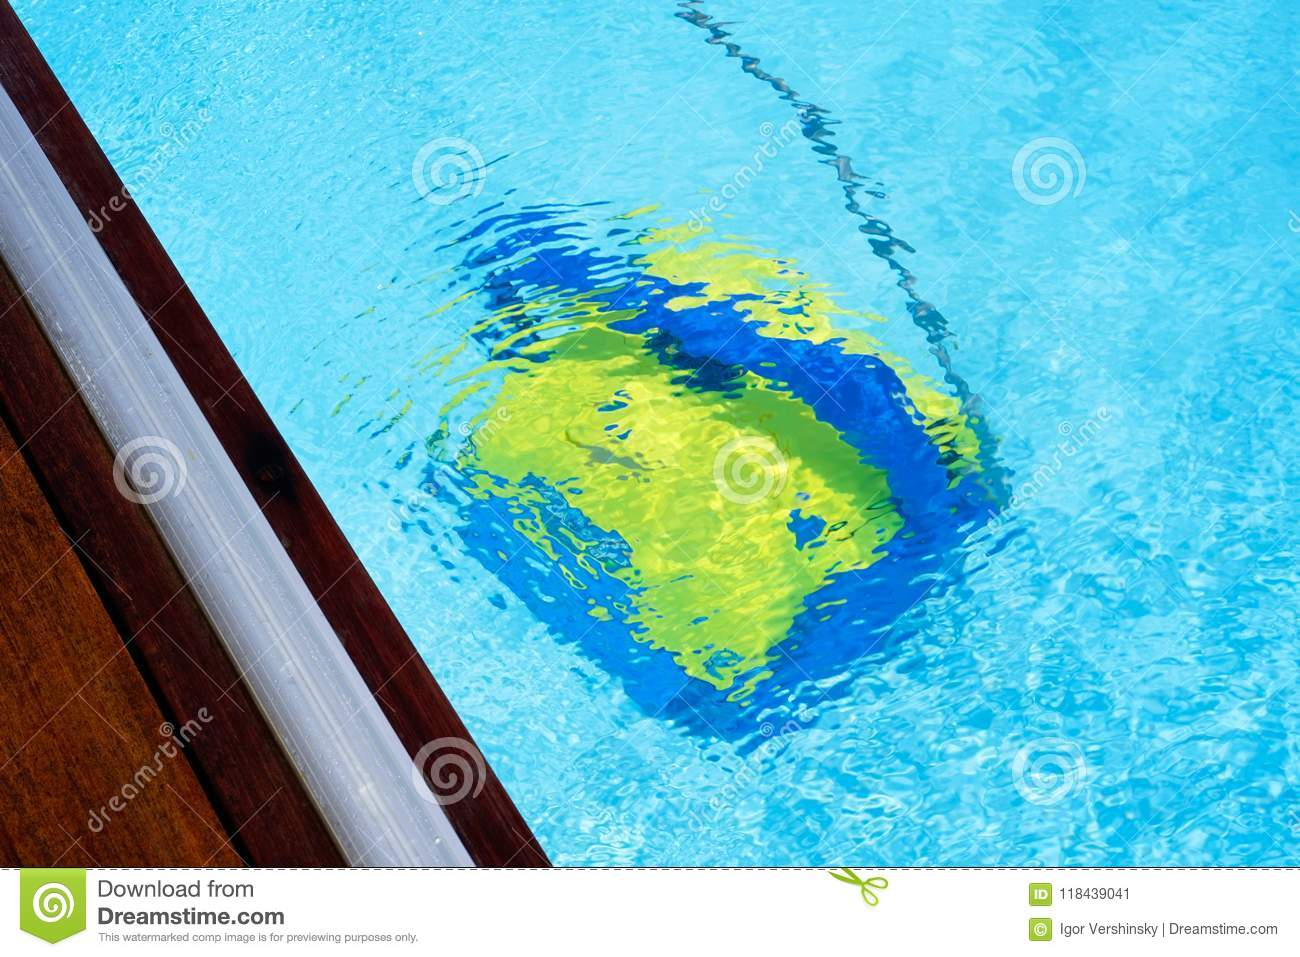 Automatic pool cleaners. stock image. Image of blue - 118439041